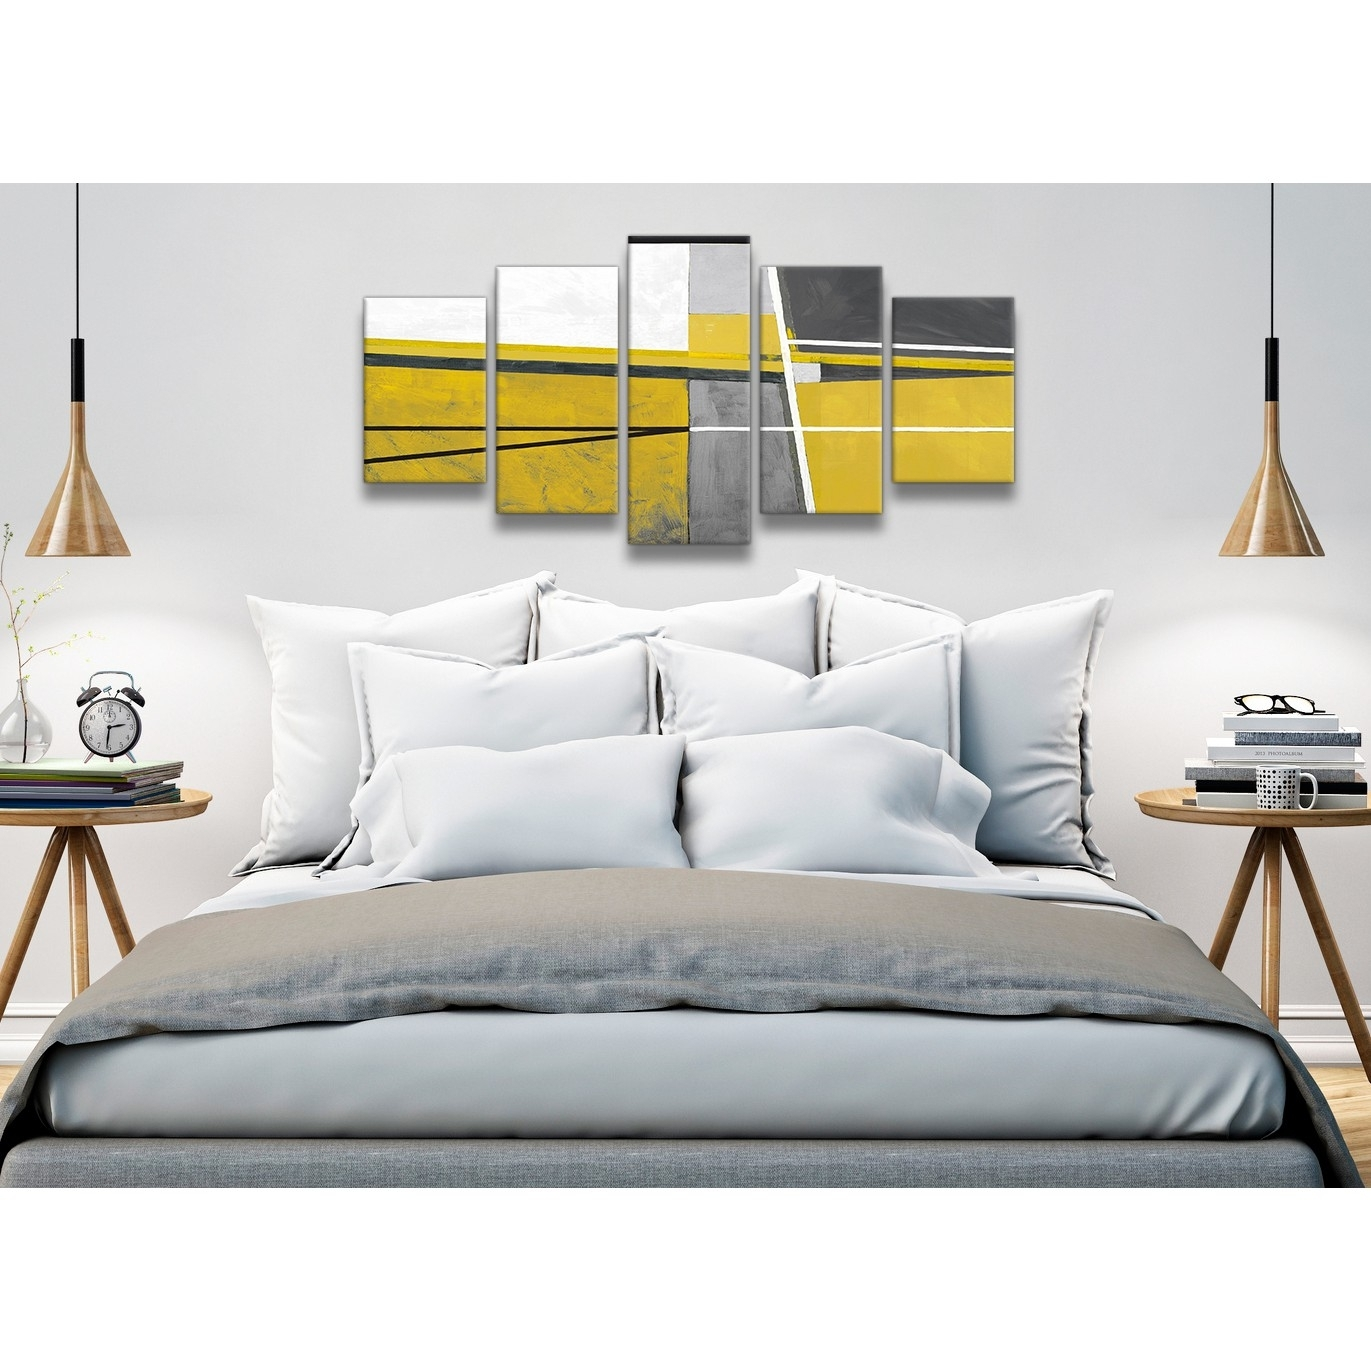 5 Panel Mustard Yellow Grey Painting Abstract Bedroom Canvas For Bedroom Wall Art (Photo 13 of 20)